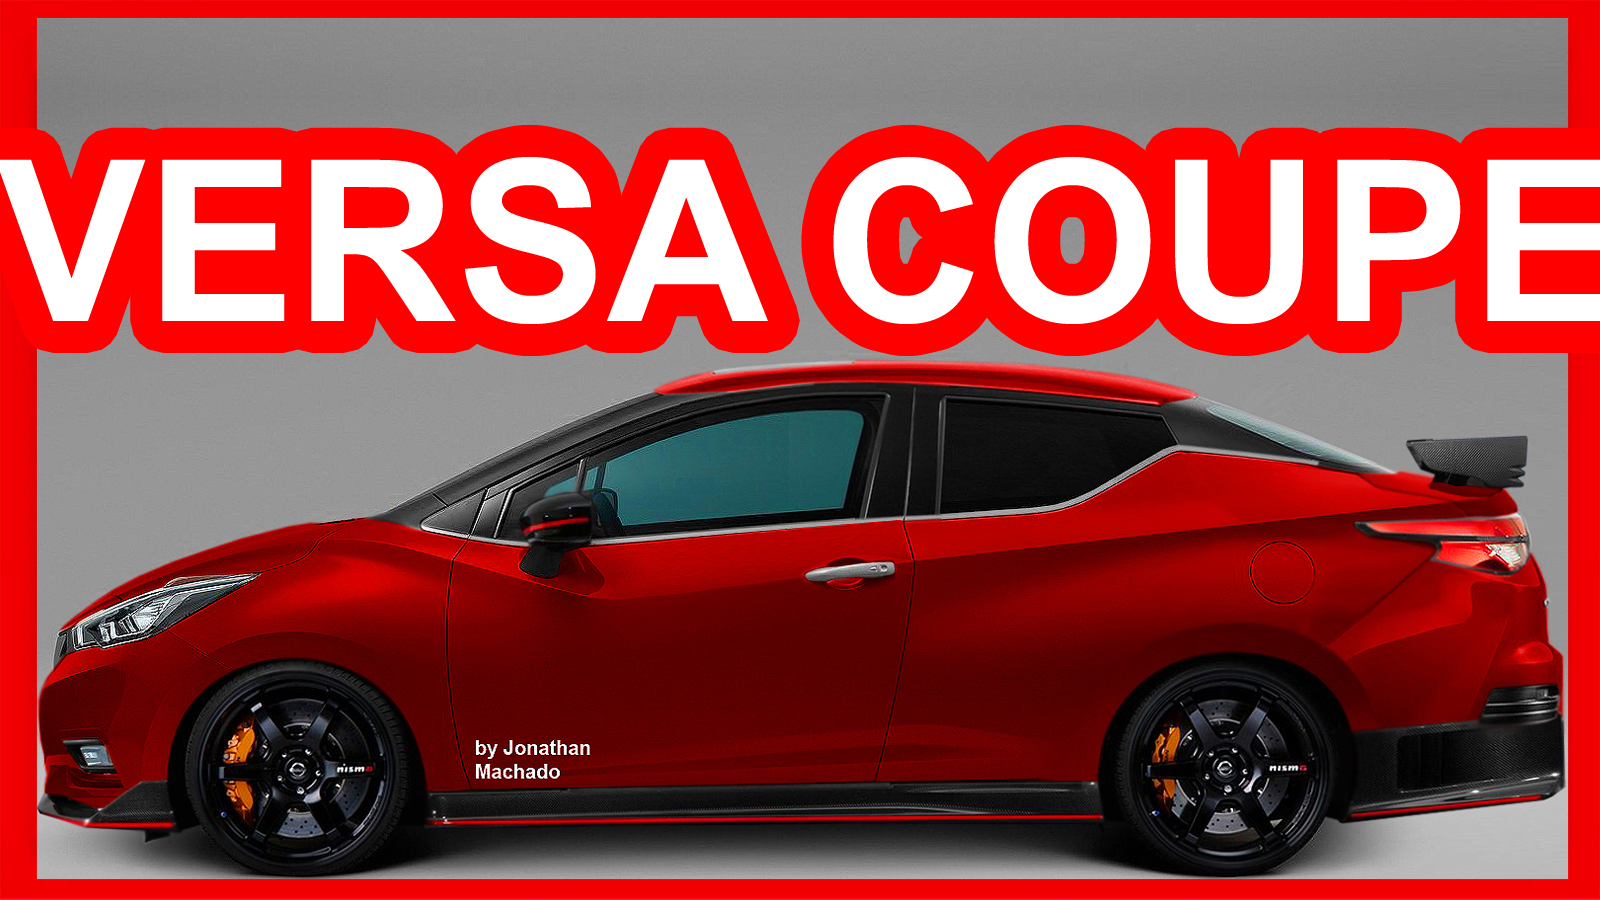 PHOTOSHOP All-New 2018 Nissan Versa Coupe @ Almera Sunny ...